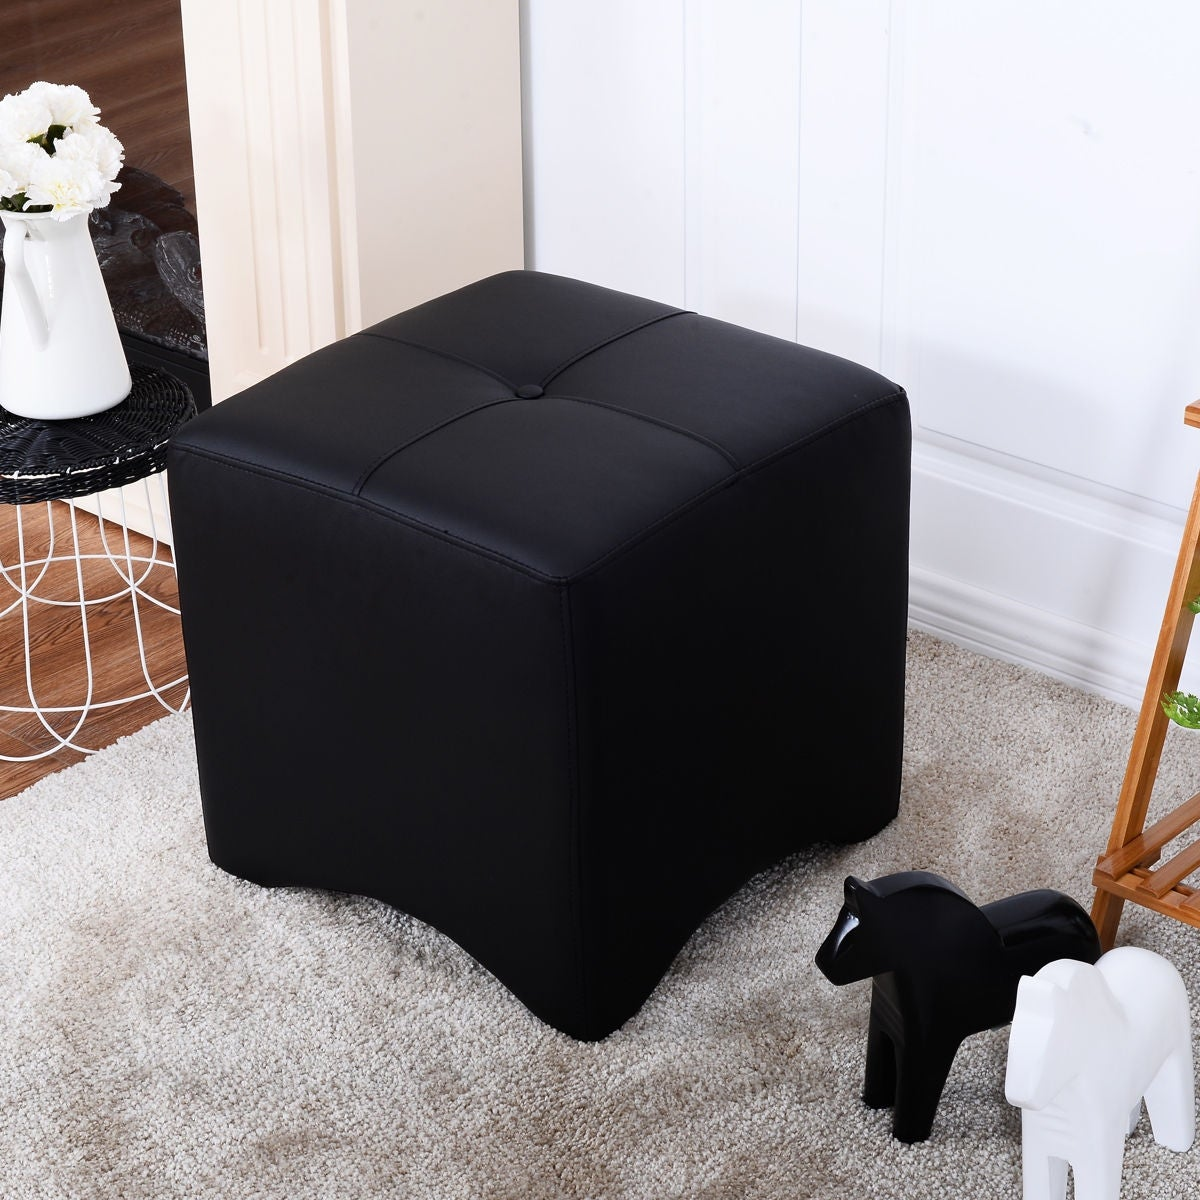 Costway PU Leather Square Cube Ottoman FootStool Rest Seating Home  Furniture Black New - Free Shipping Today - Overstock.com - 22737769